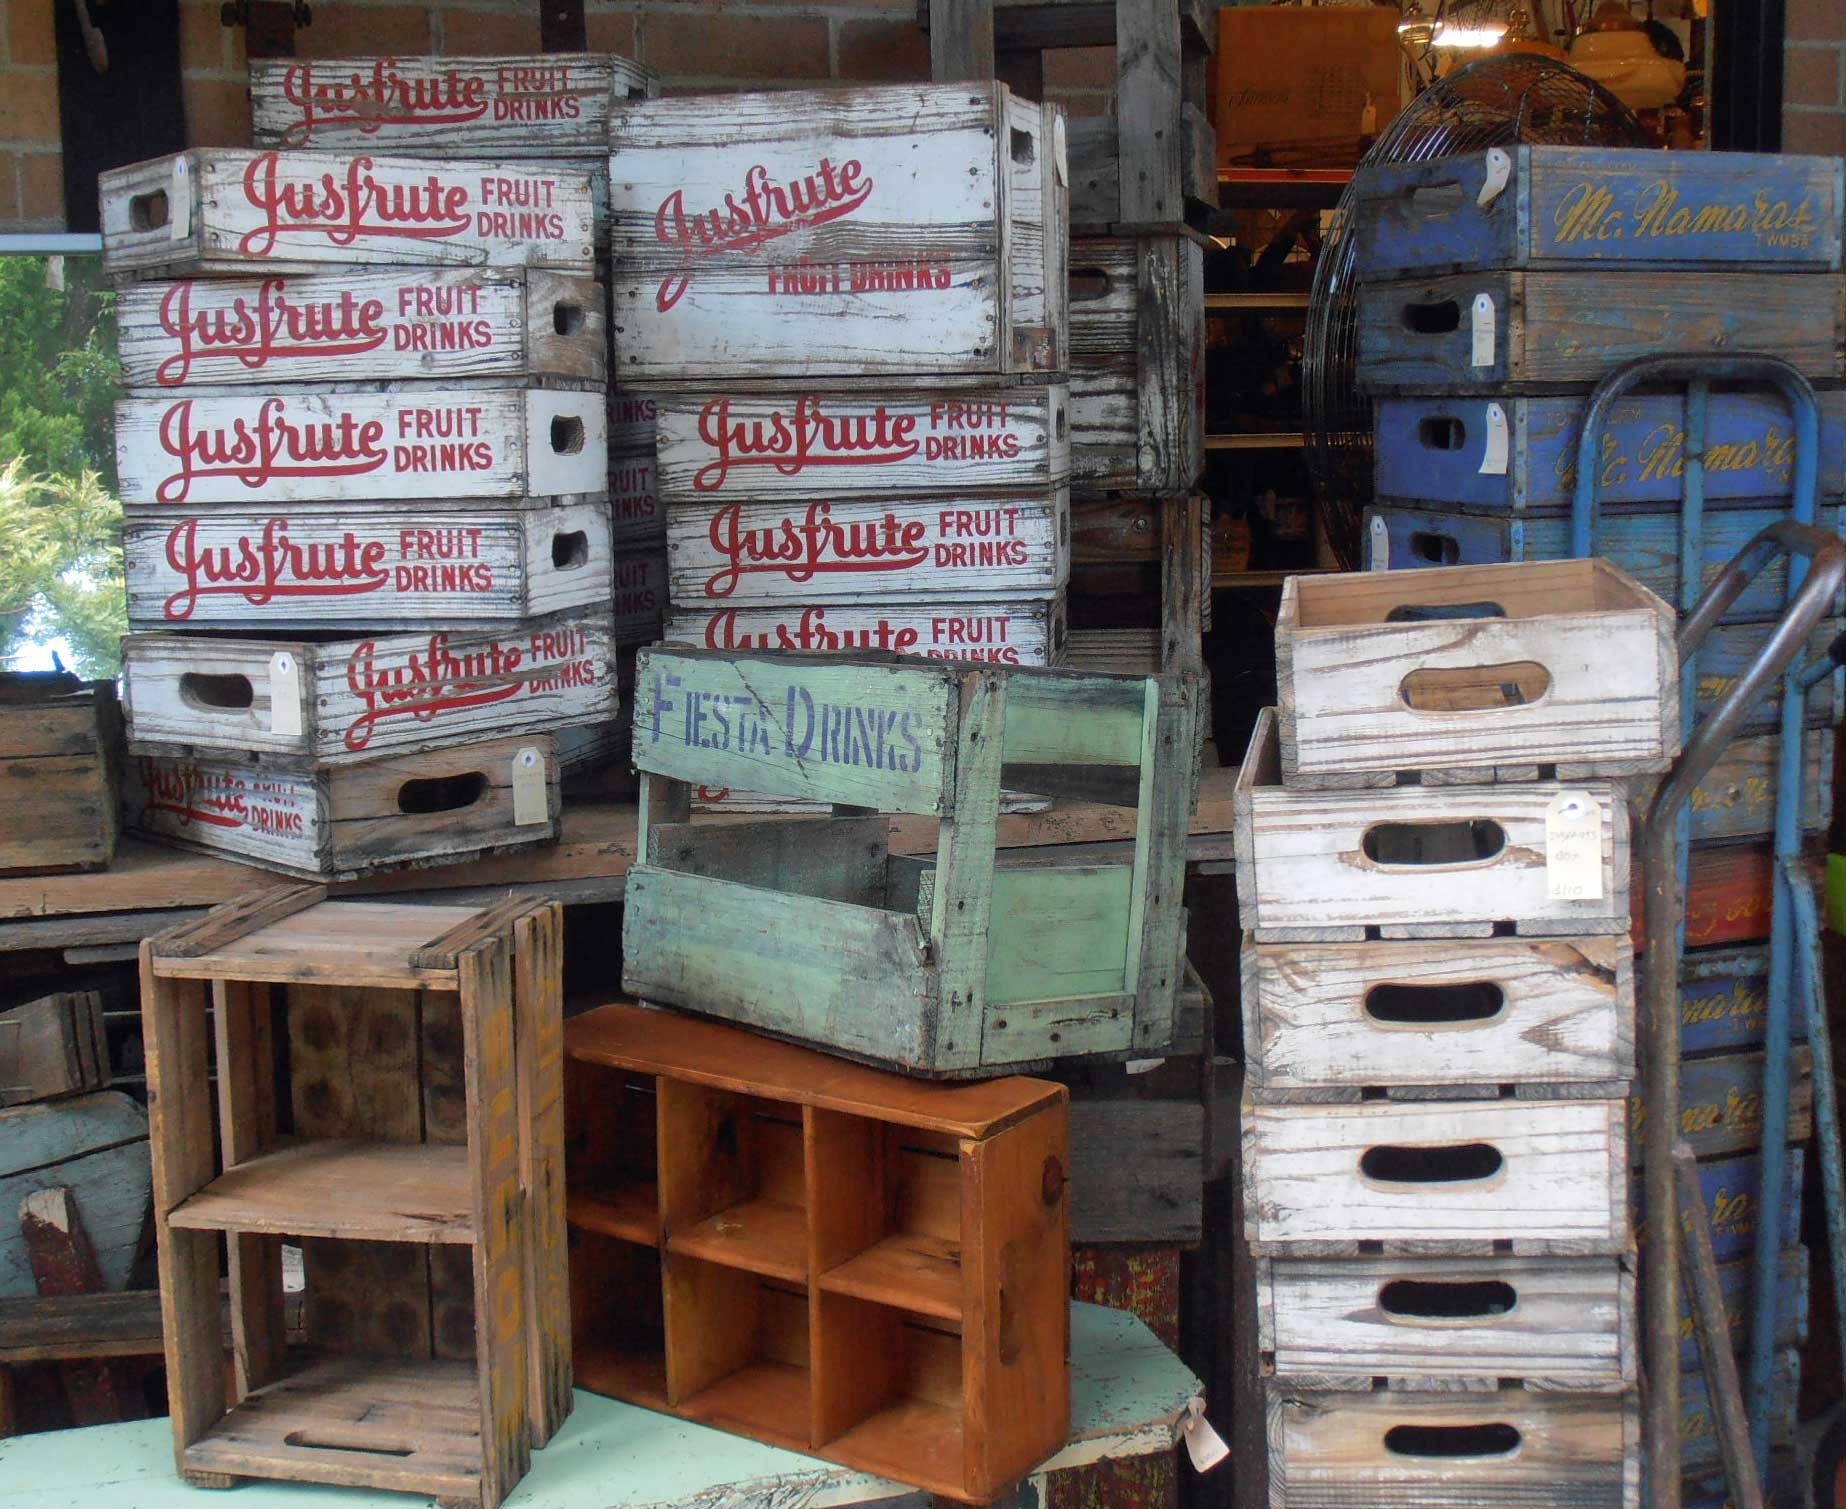 antique and vintage Boxes and crates, For sale at Heaths Old Wares, Antiques, Collectables and industrial antiques 12 station St bangalow NSW phone 0266872222 open 7 days